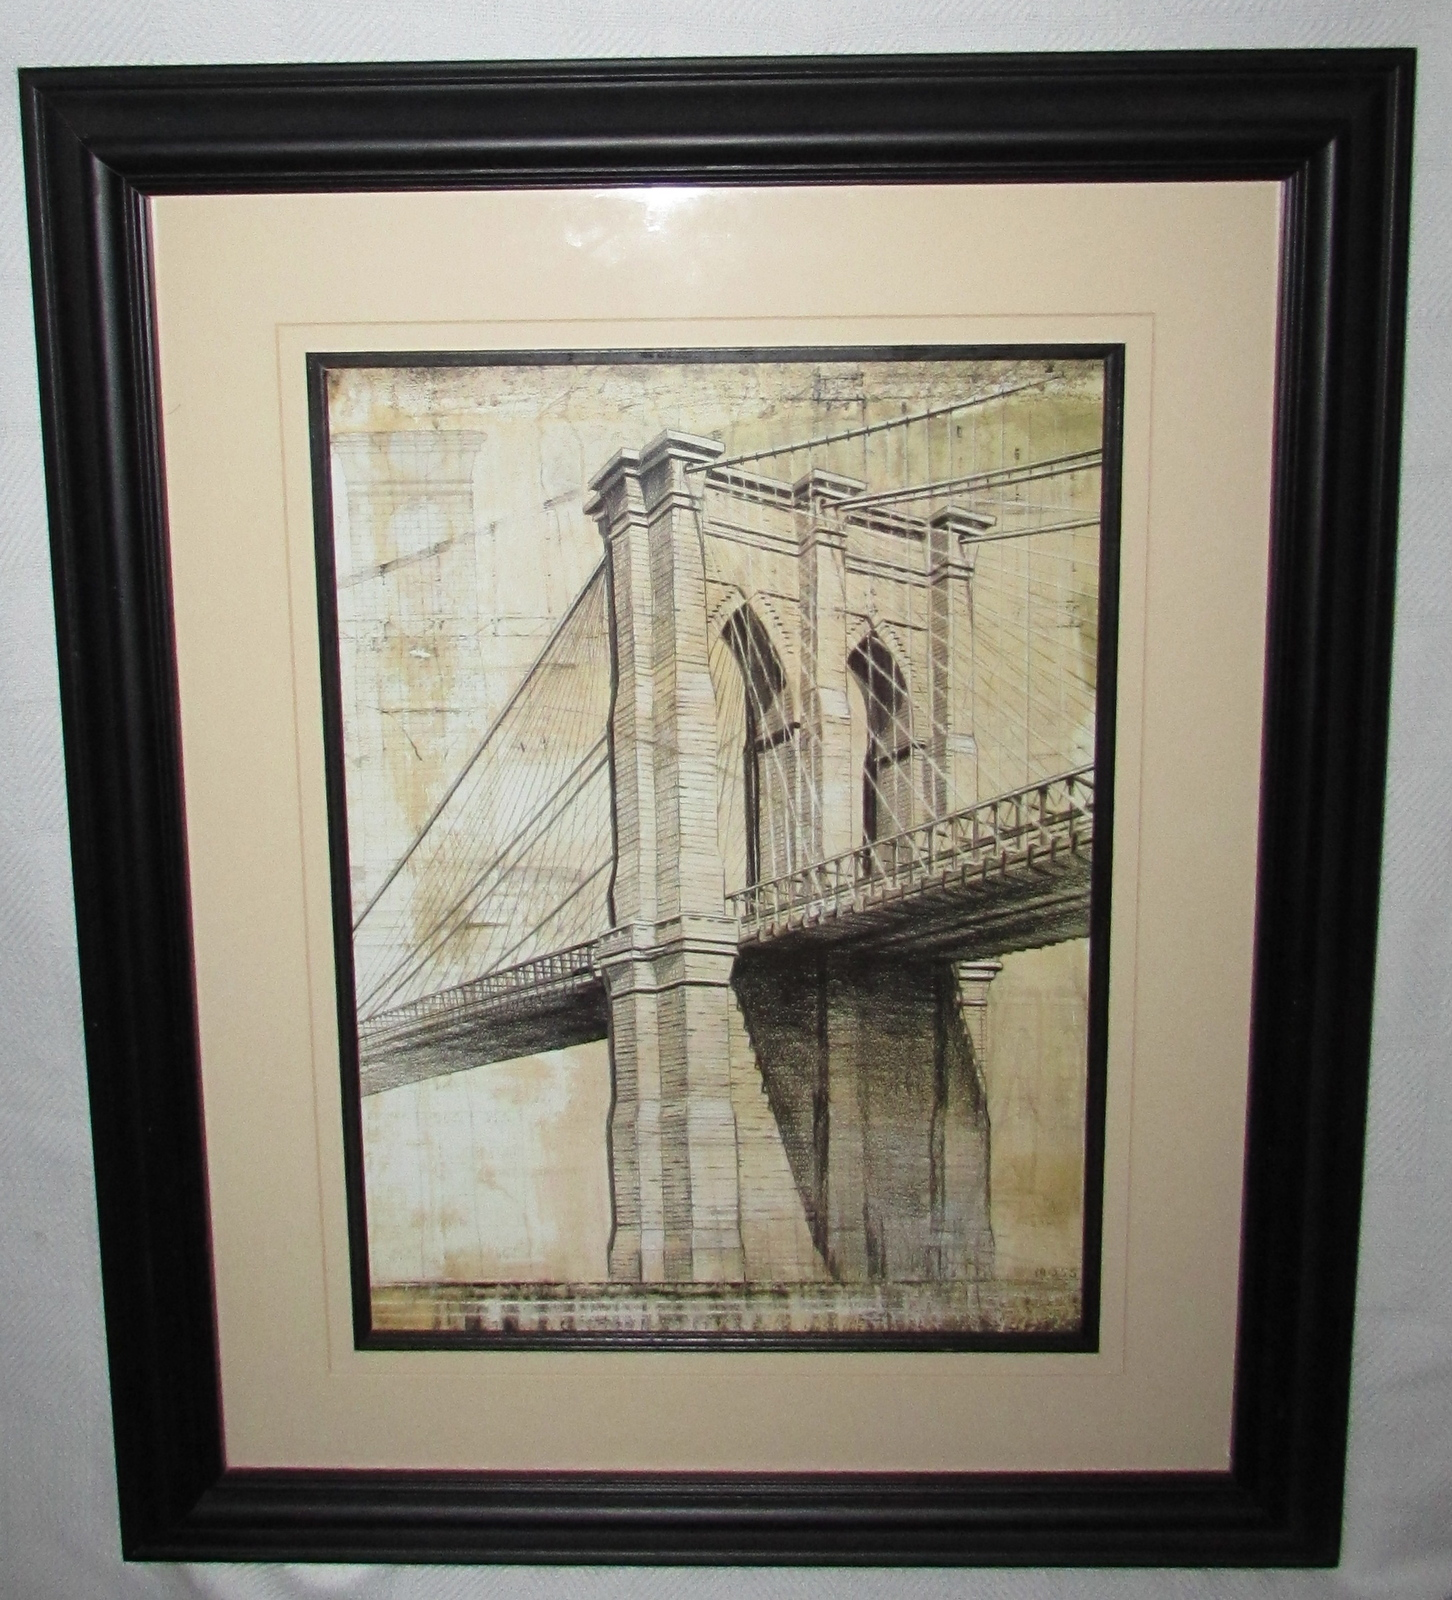 "P. Moss 'Brooklyn Bridge' Framed Art Print - Image dimensions: 19.5"" H x 16"" W"